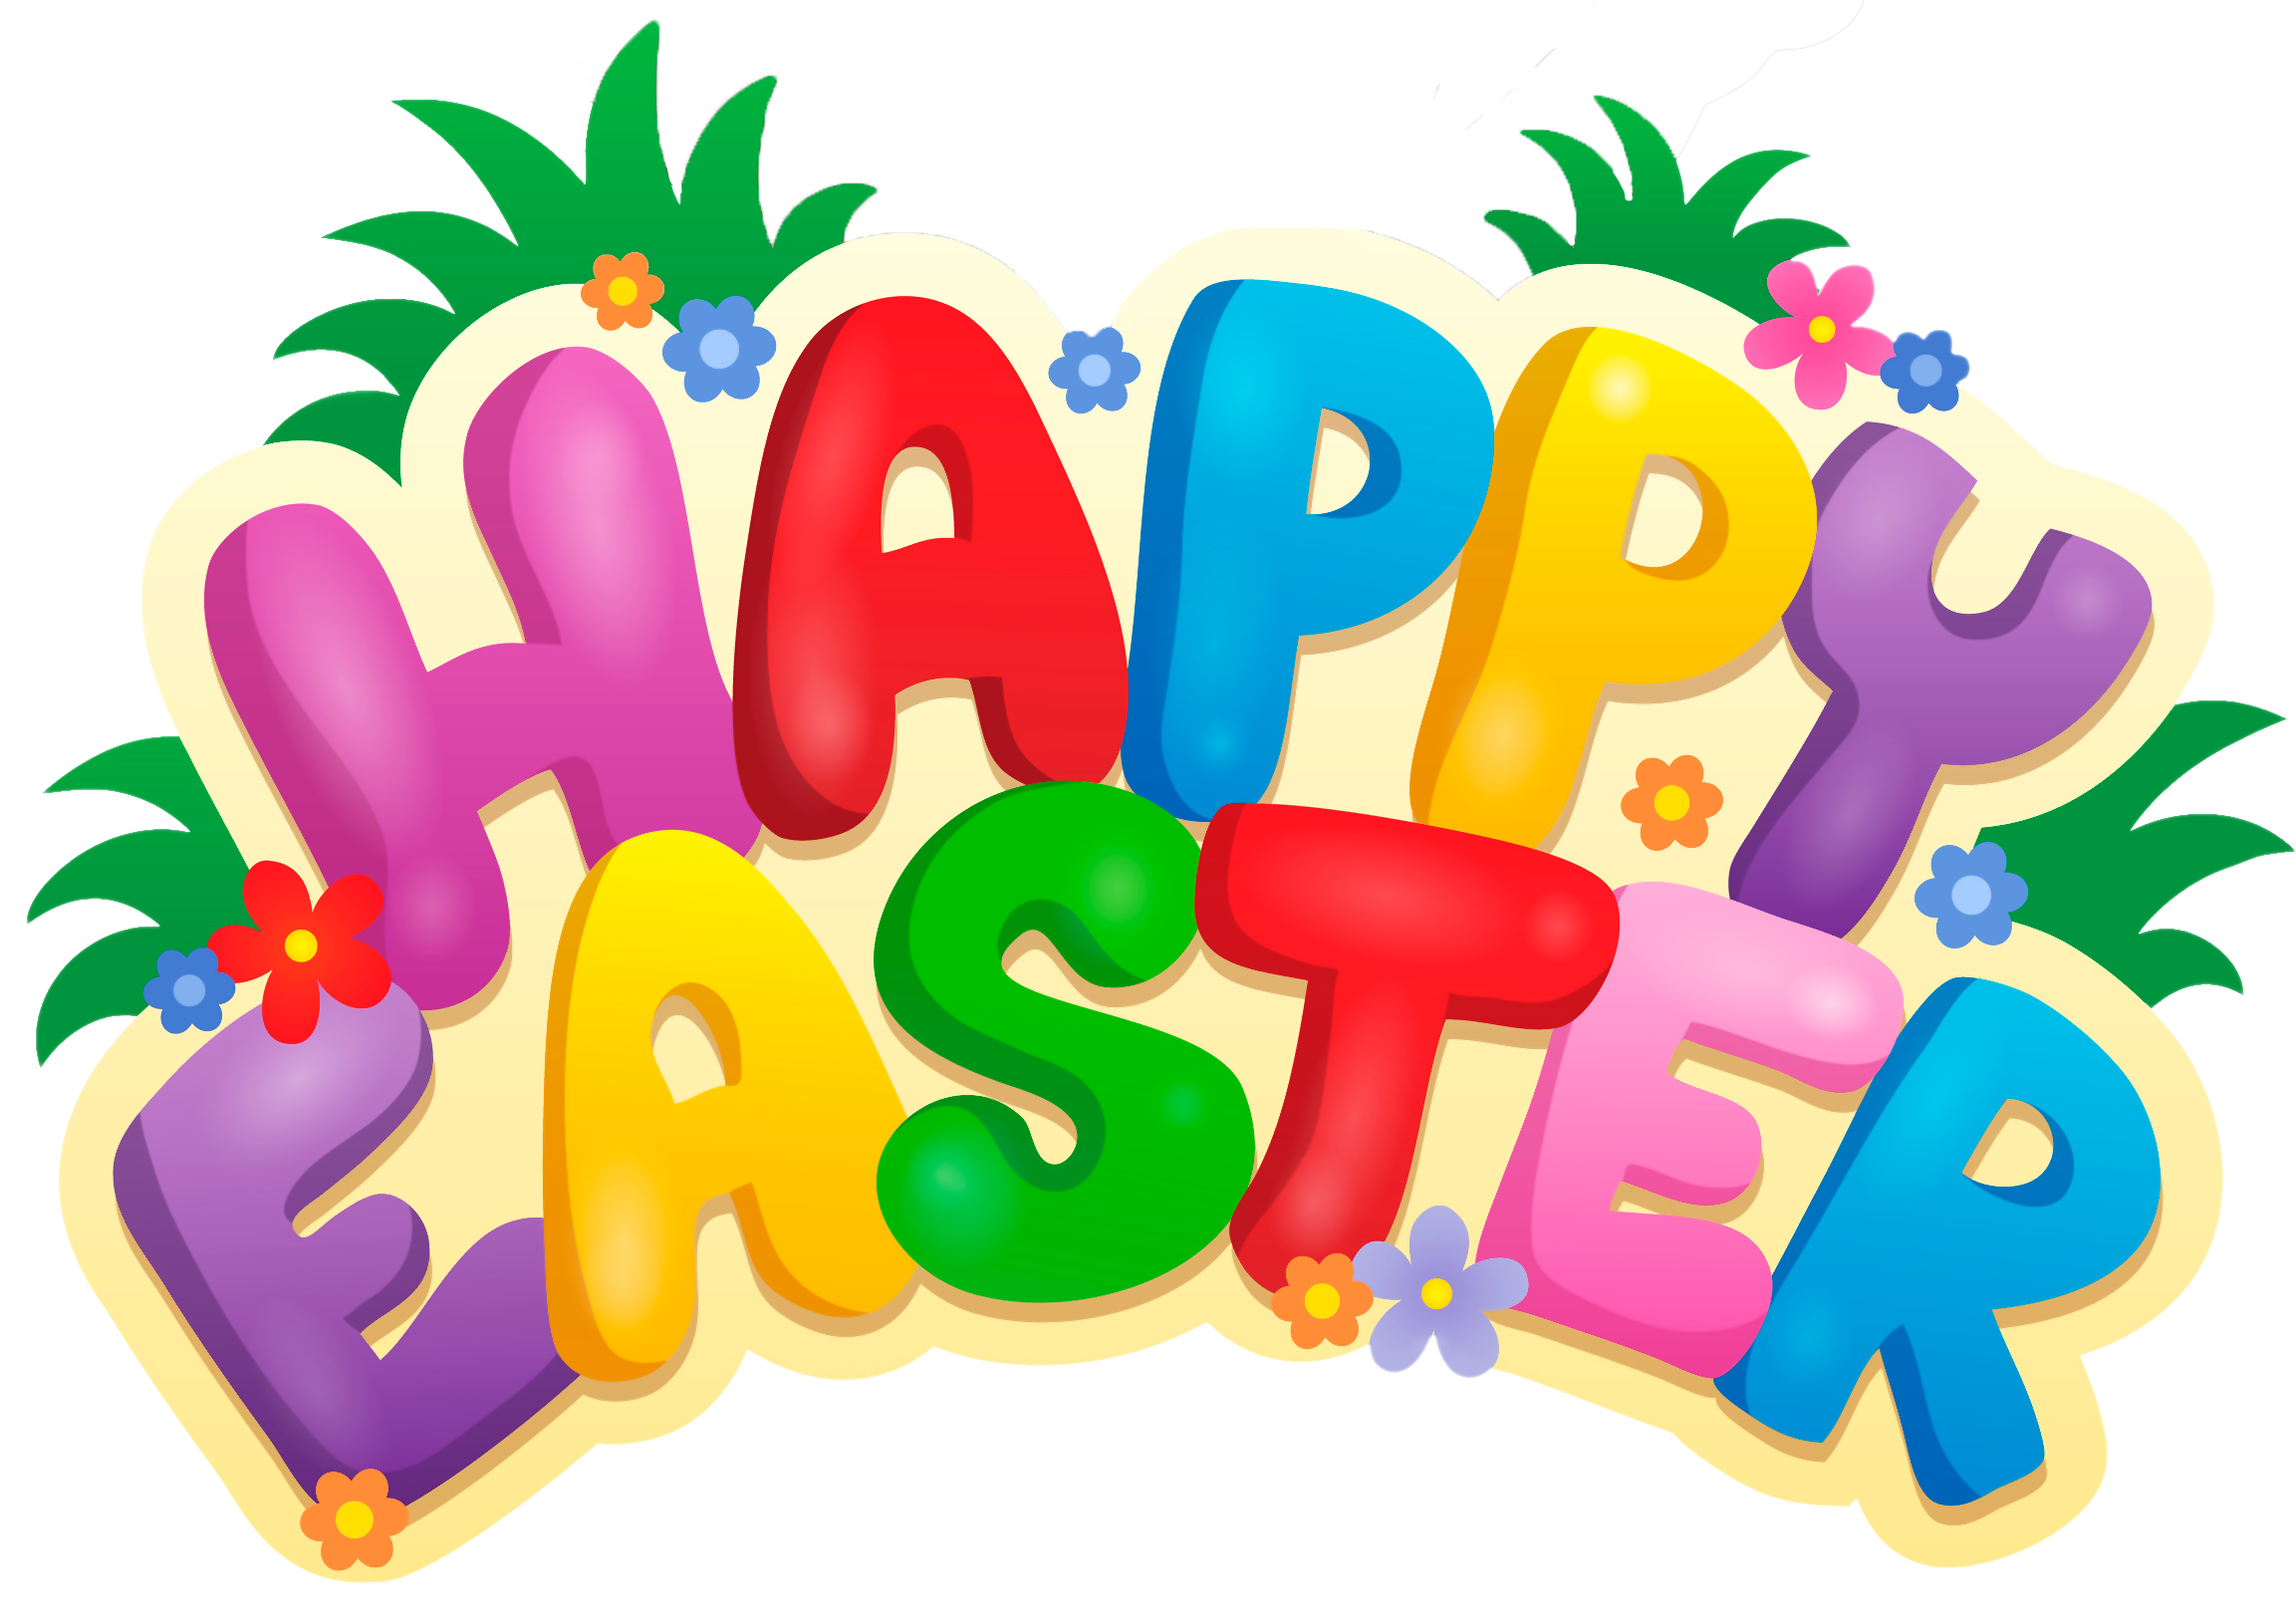 NO ECAT Bus u0026 UWF Trolley Service on Easter Sunday, April 16th. Beach  Trolleys will run on Easter Sunday from 5:00 PM to 1:00 AM. - Easter Day PNG